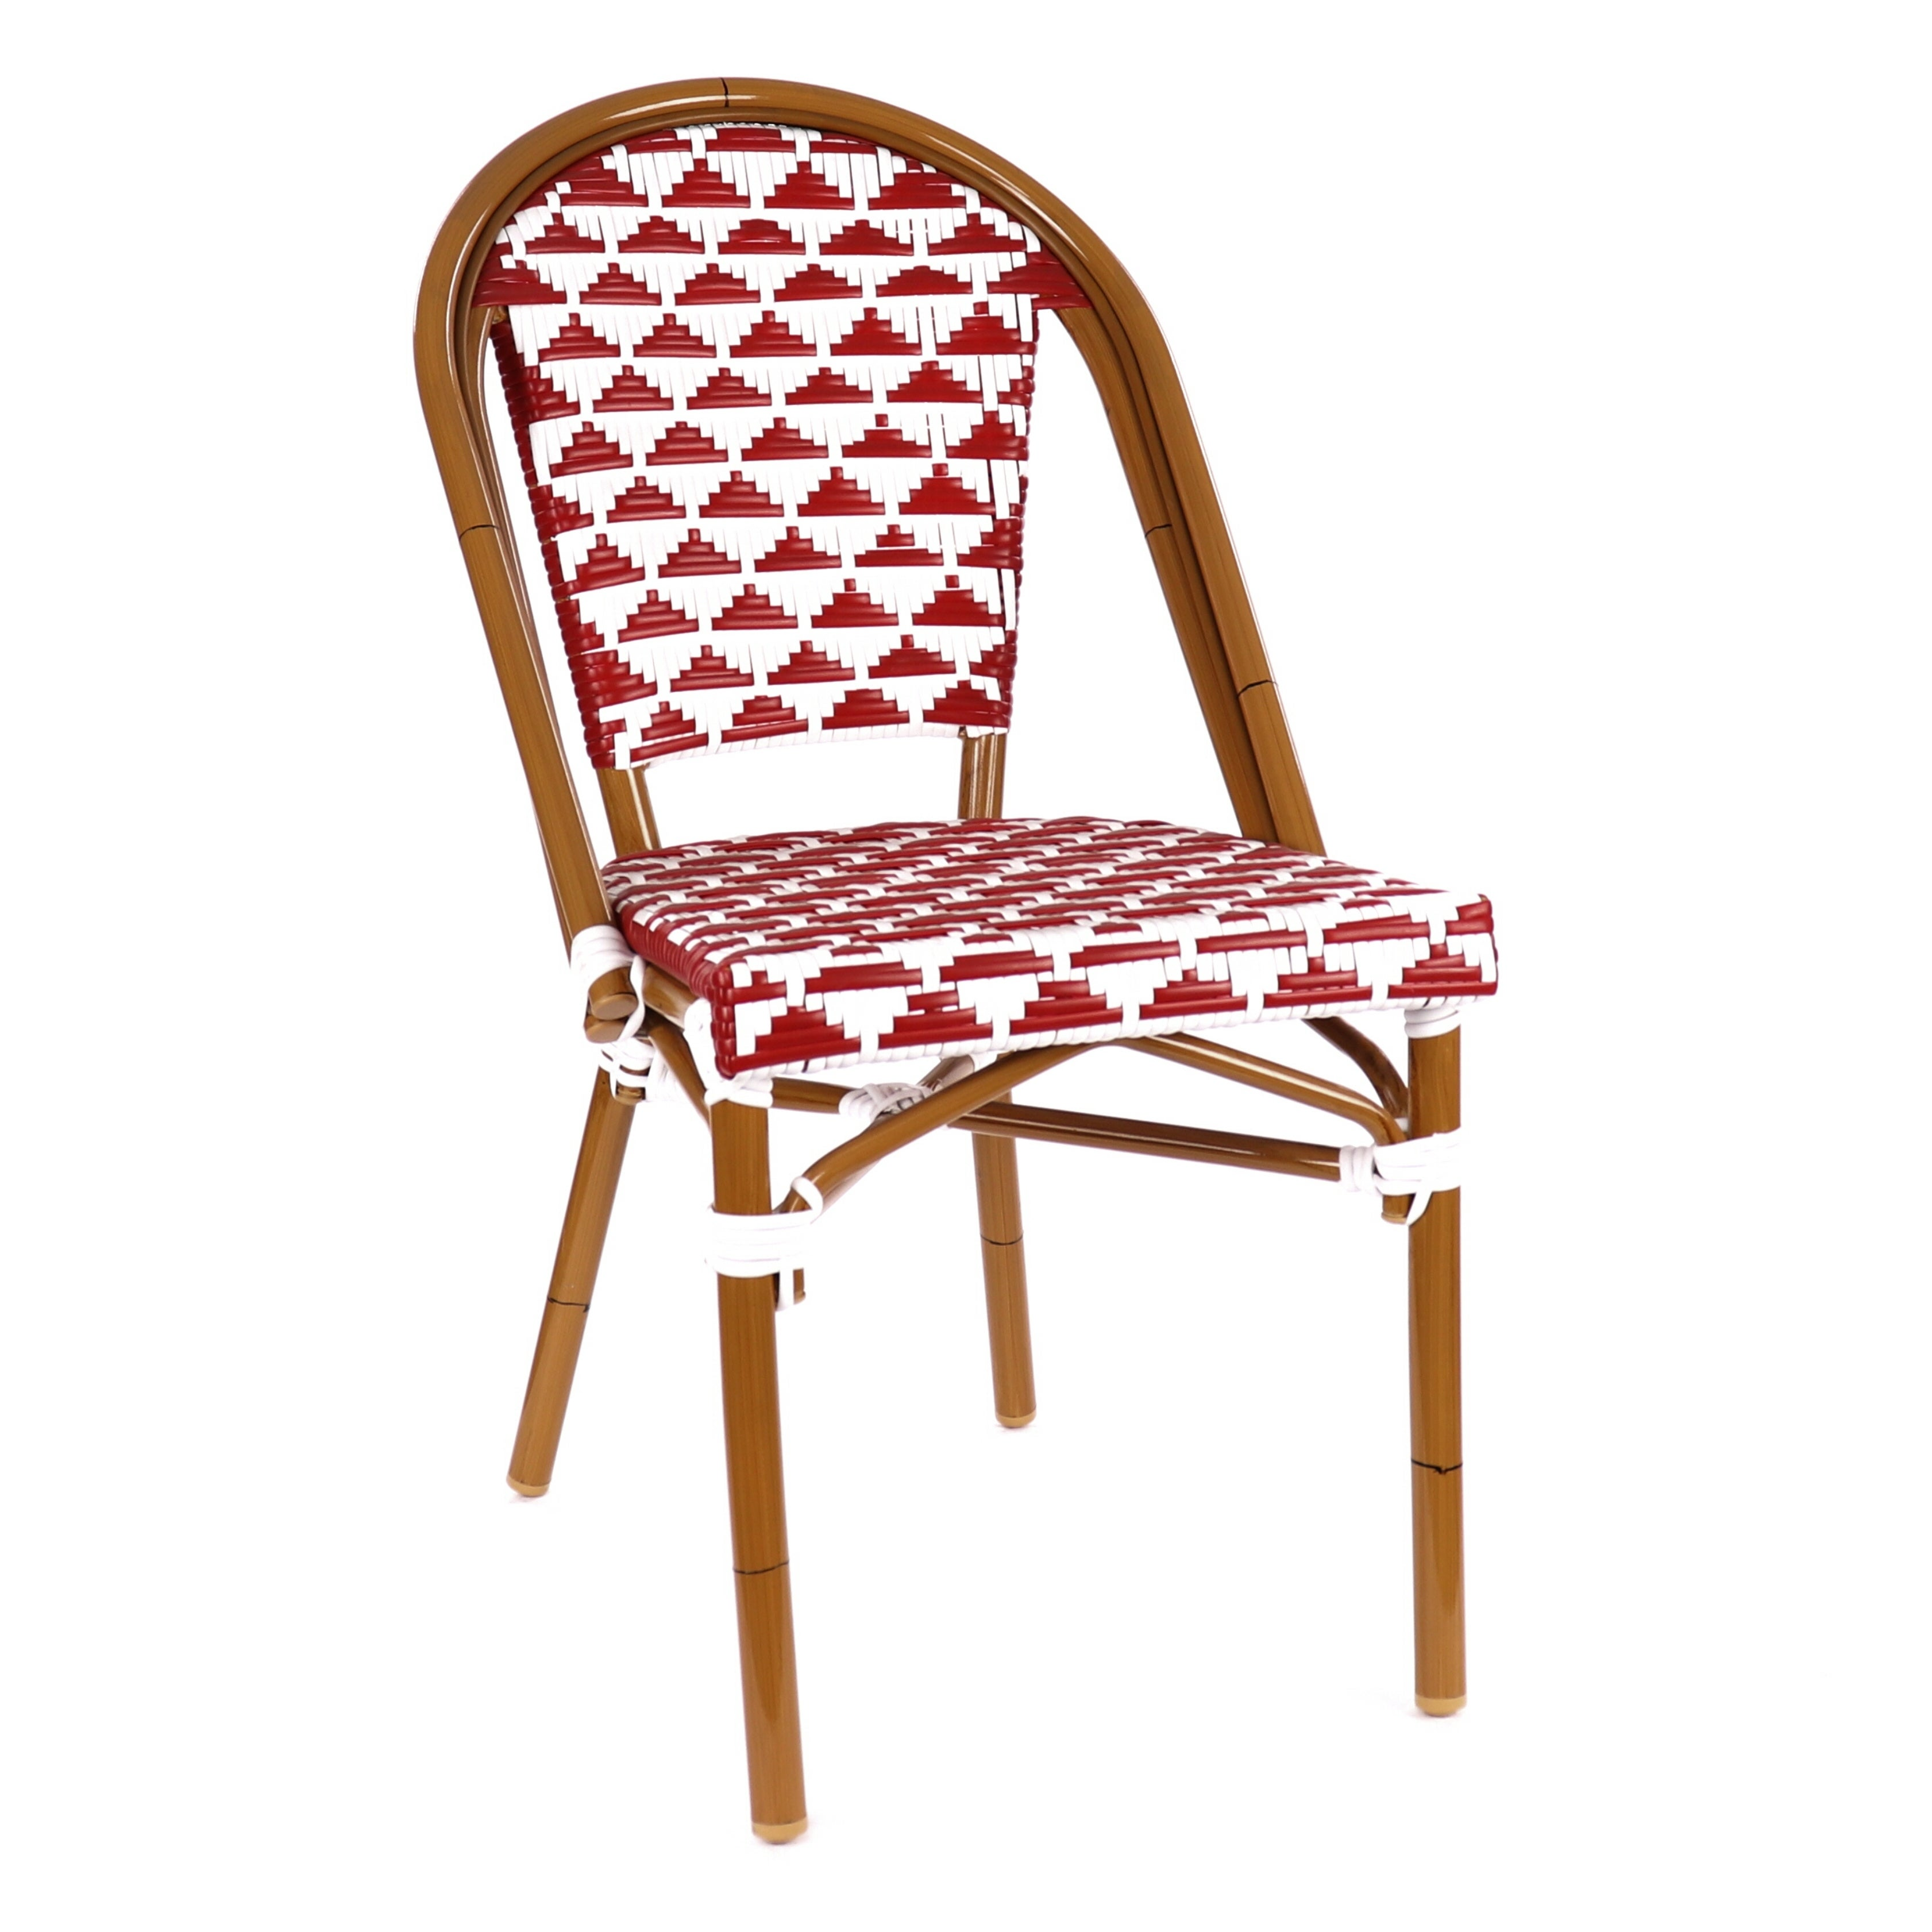 Details About Versailles Aluminum Wood Look Alike Stackable Bistro Chair  Tan, Red, White